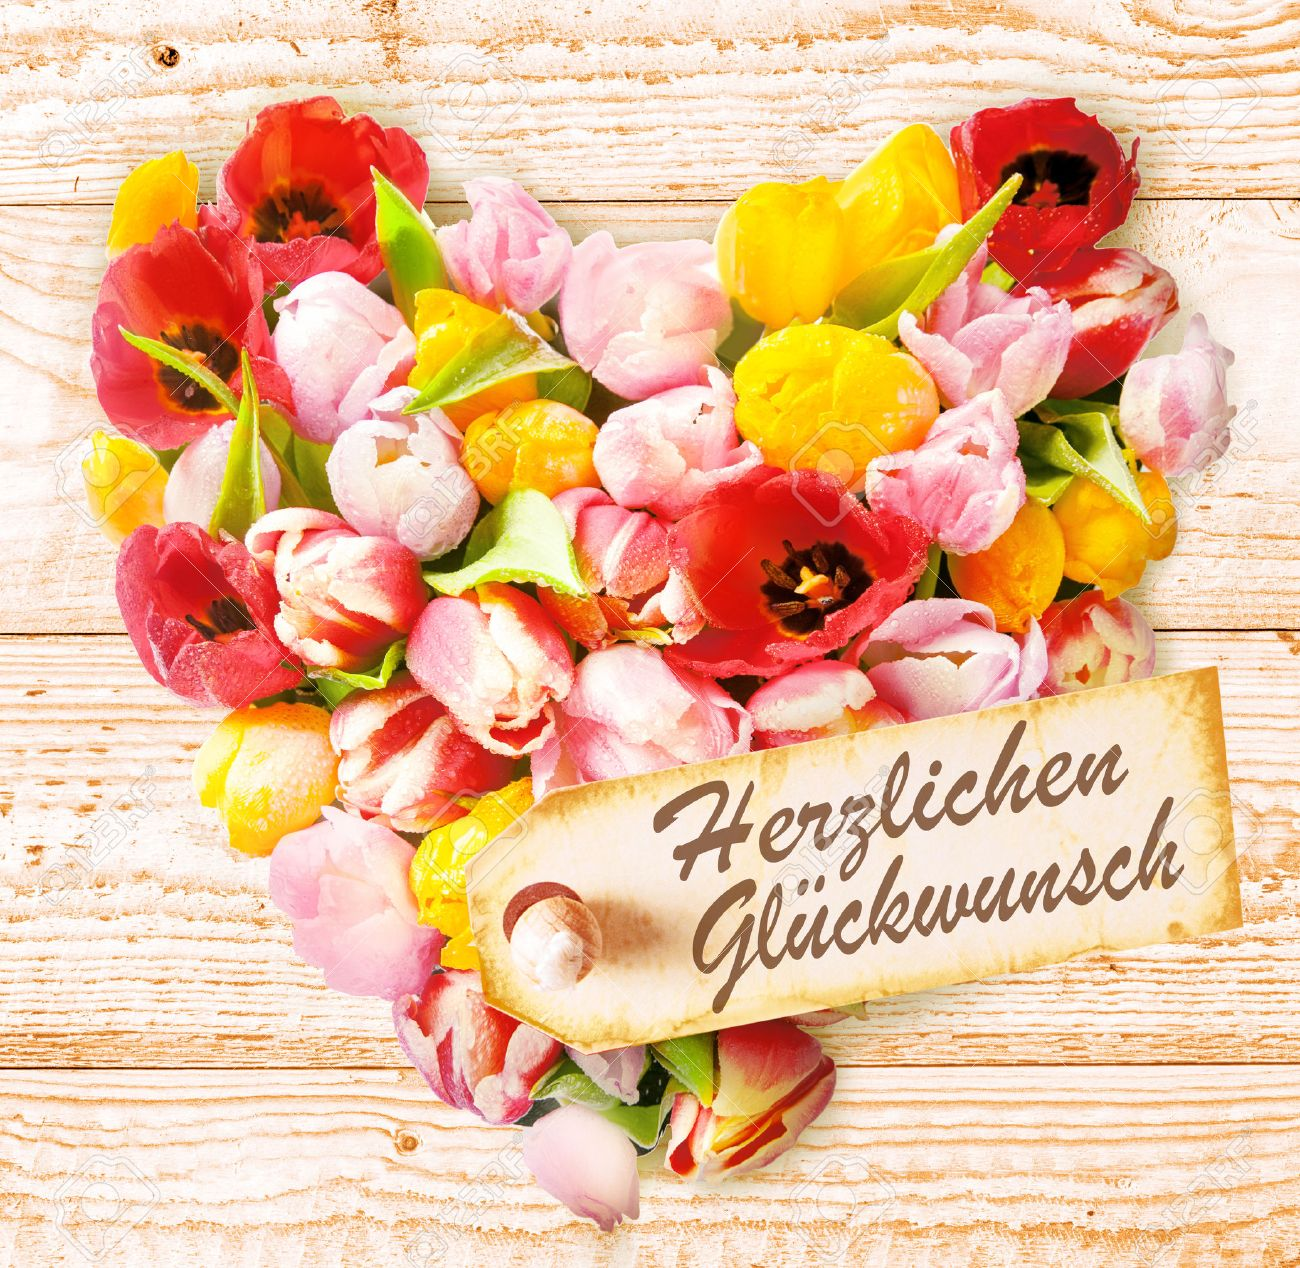 German Birthday Wishes On A Colourful Floral Heart Formed Of Fresh Spring Tulips In Vibrant Colours